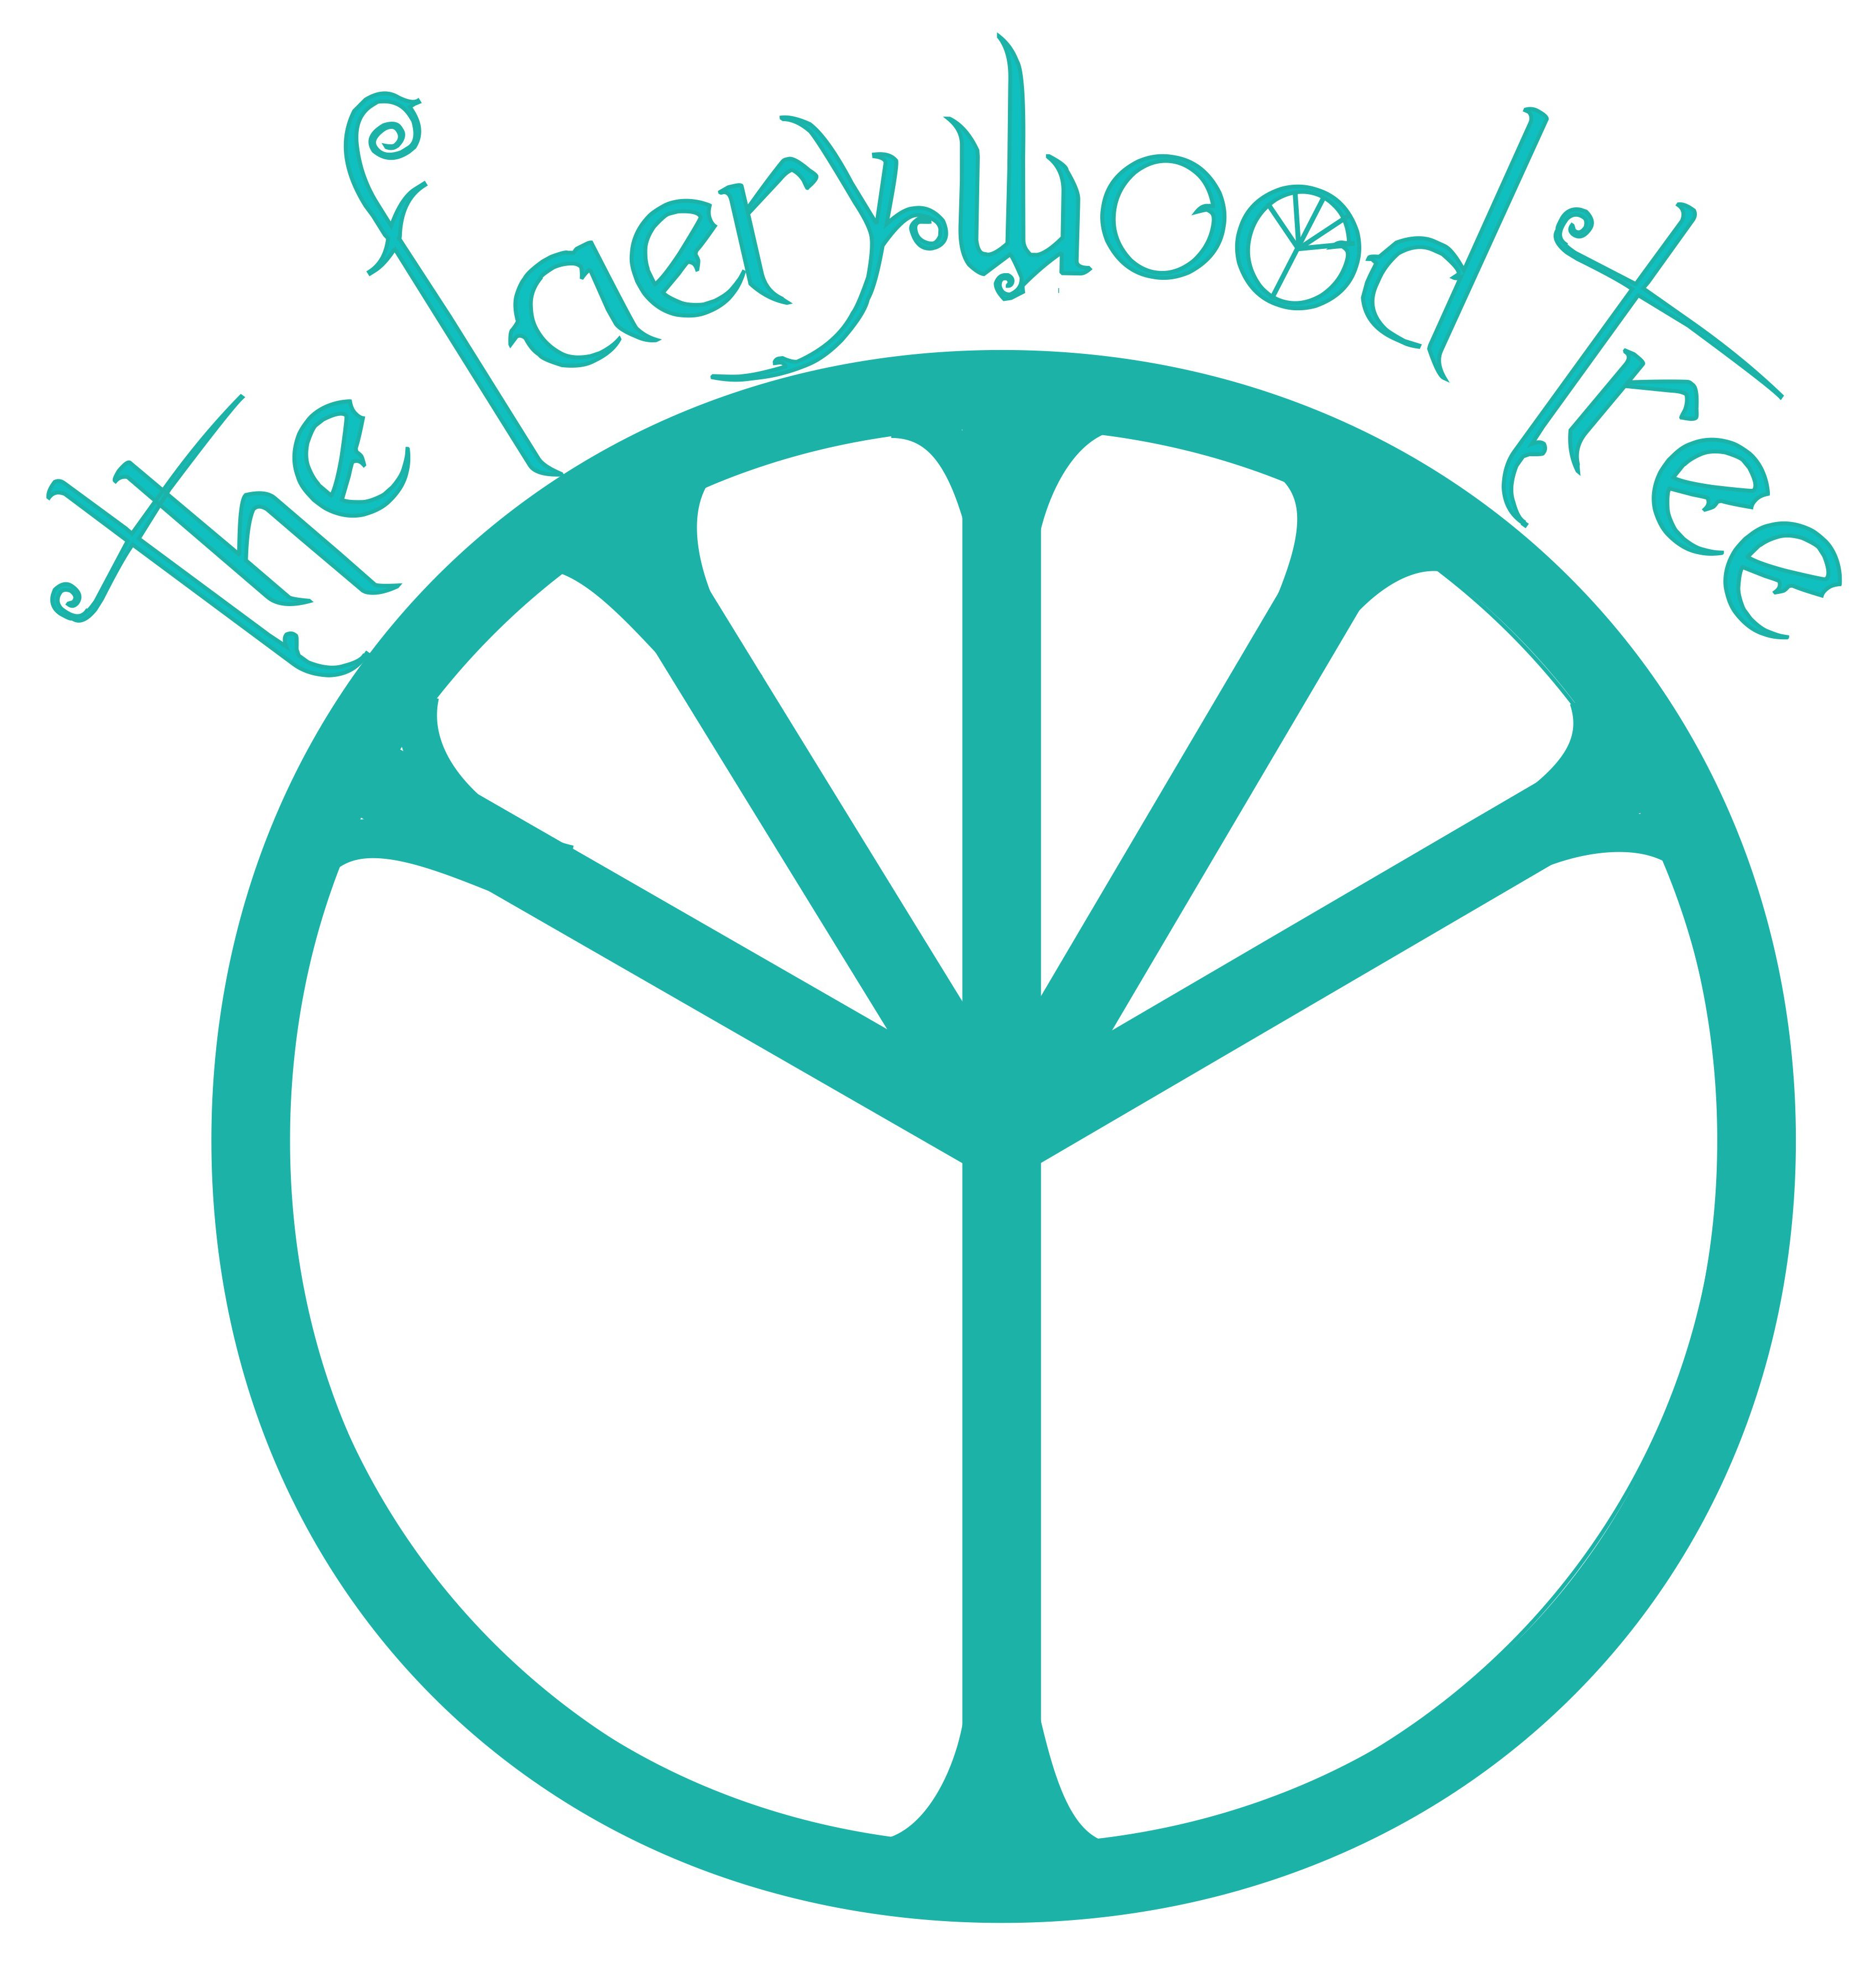 The Faerywood Tree